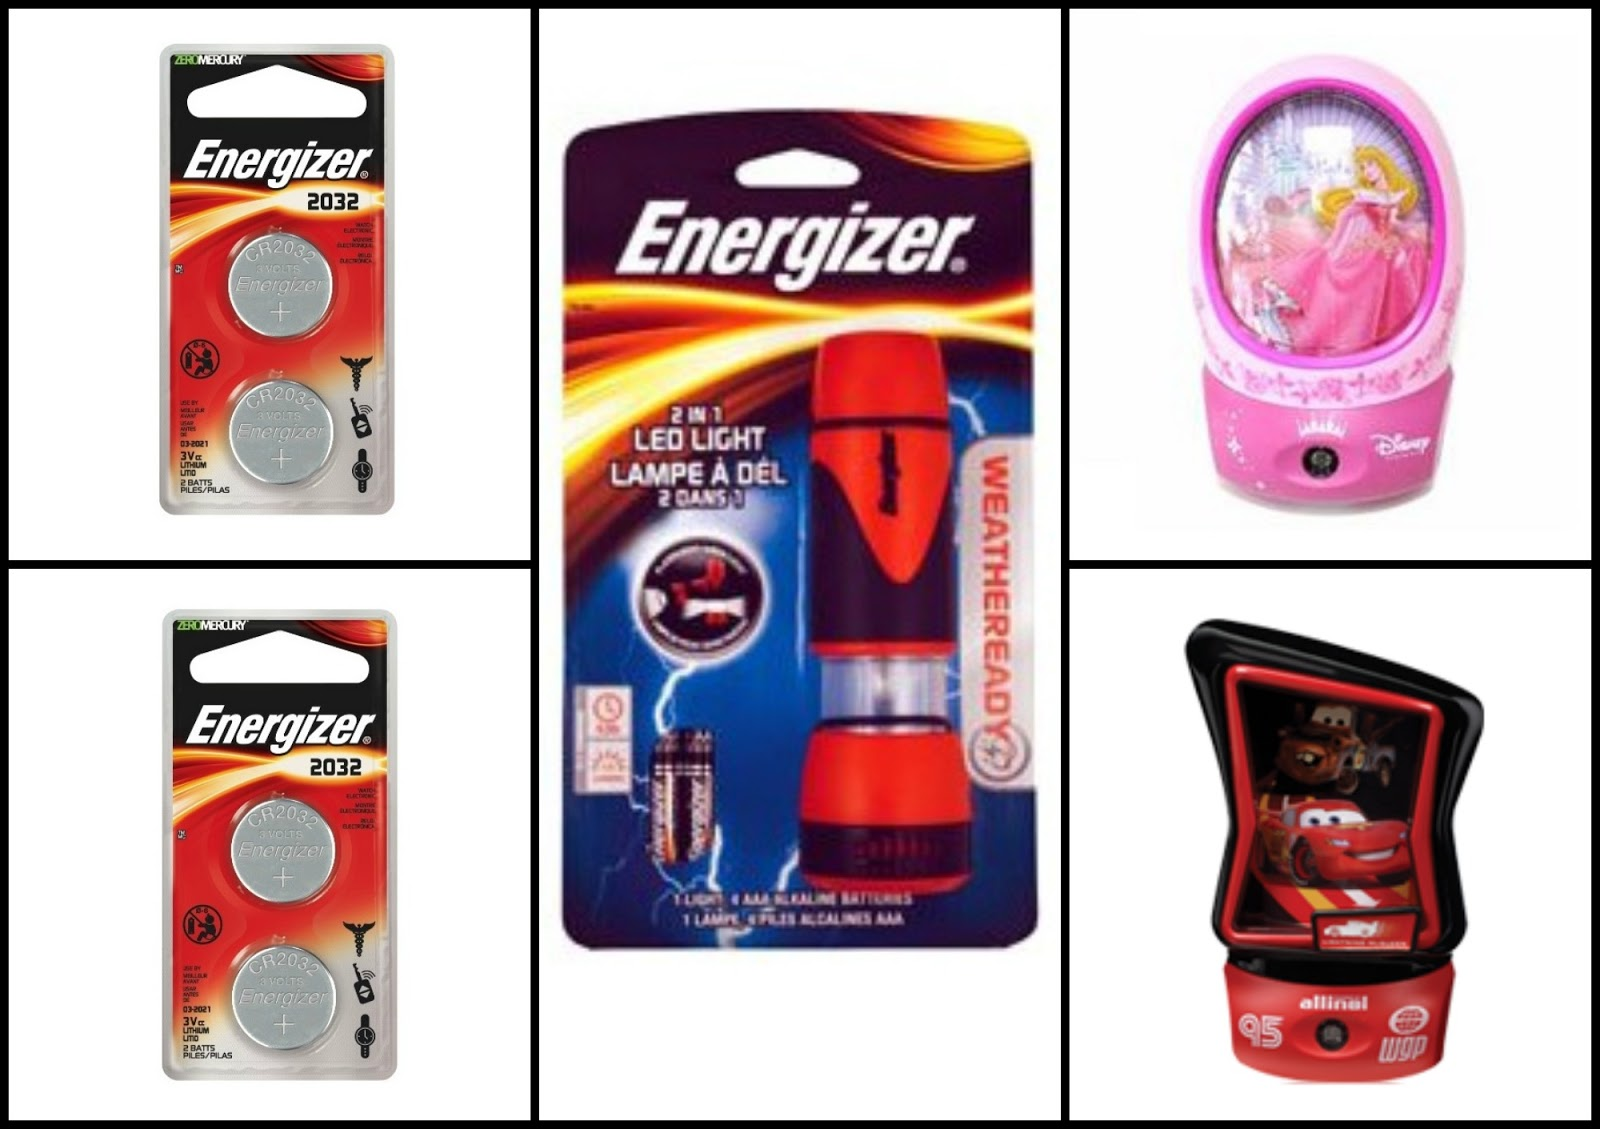 Energizer giveaway